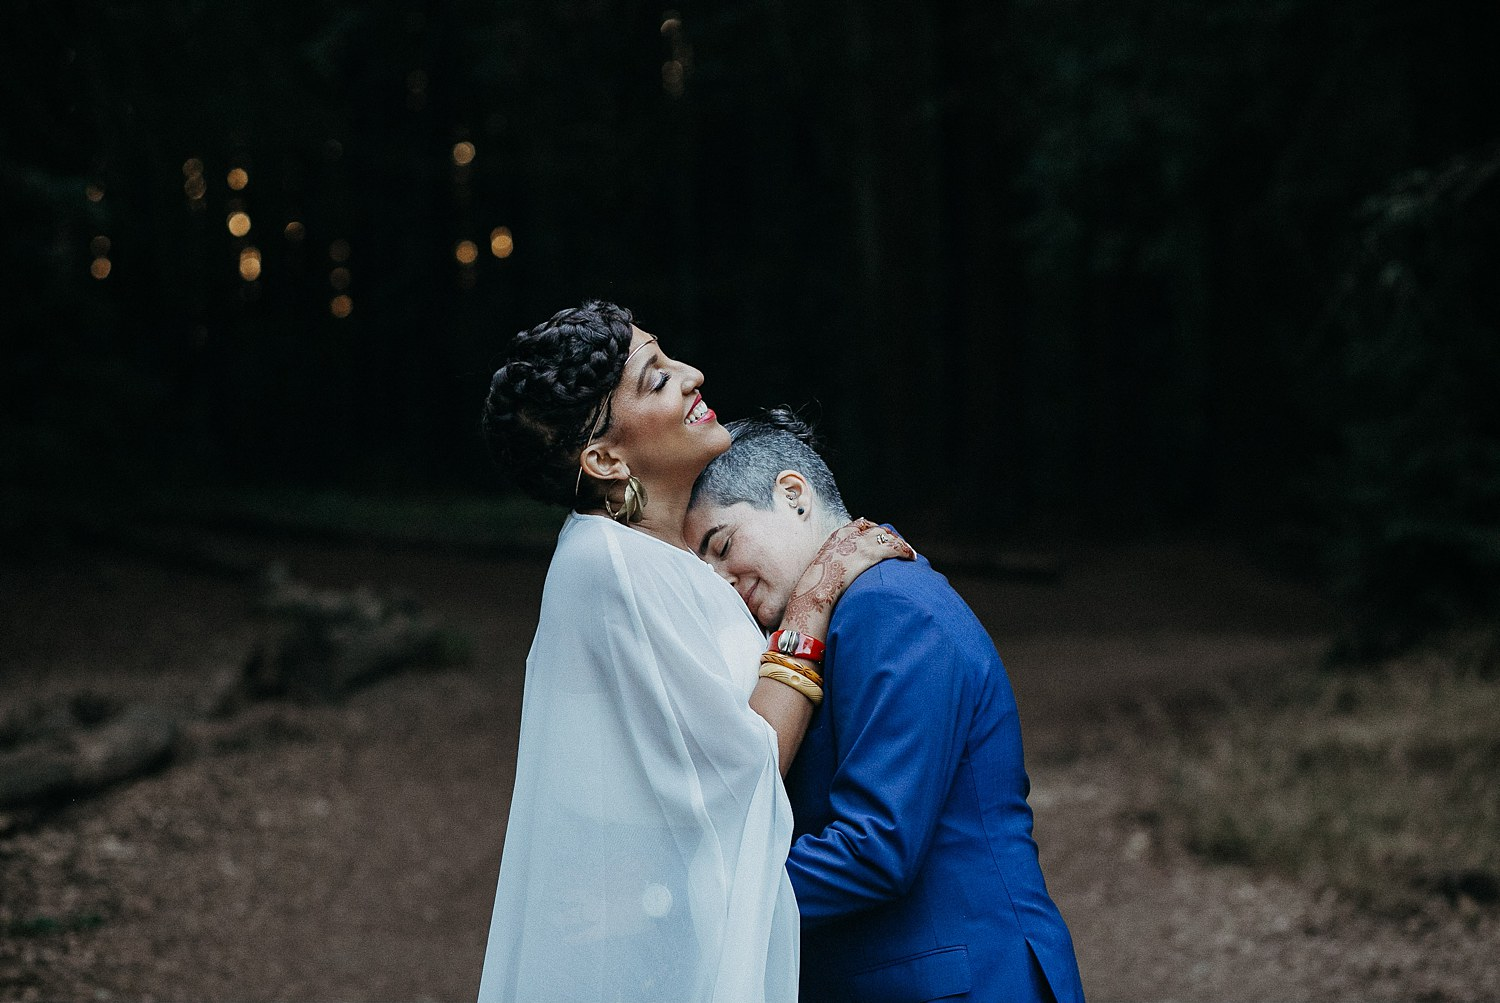 Recently married couple embraces after their wedding in Joaquin Miller Park